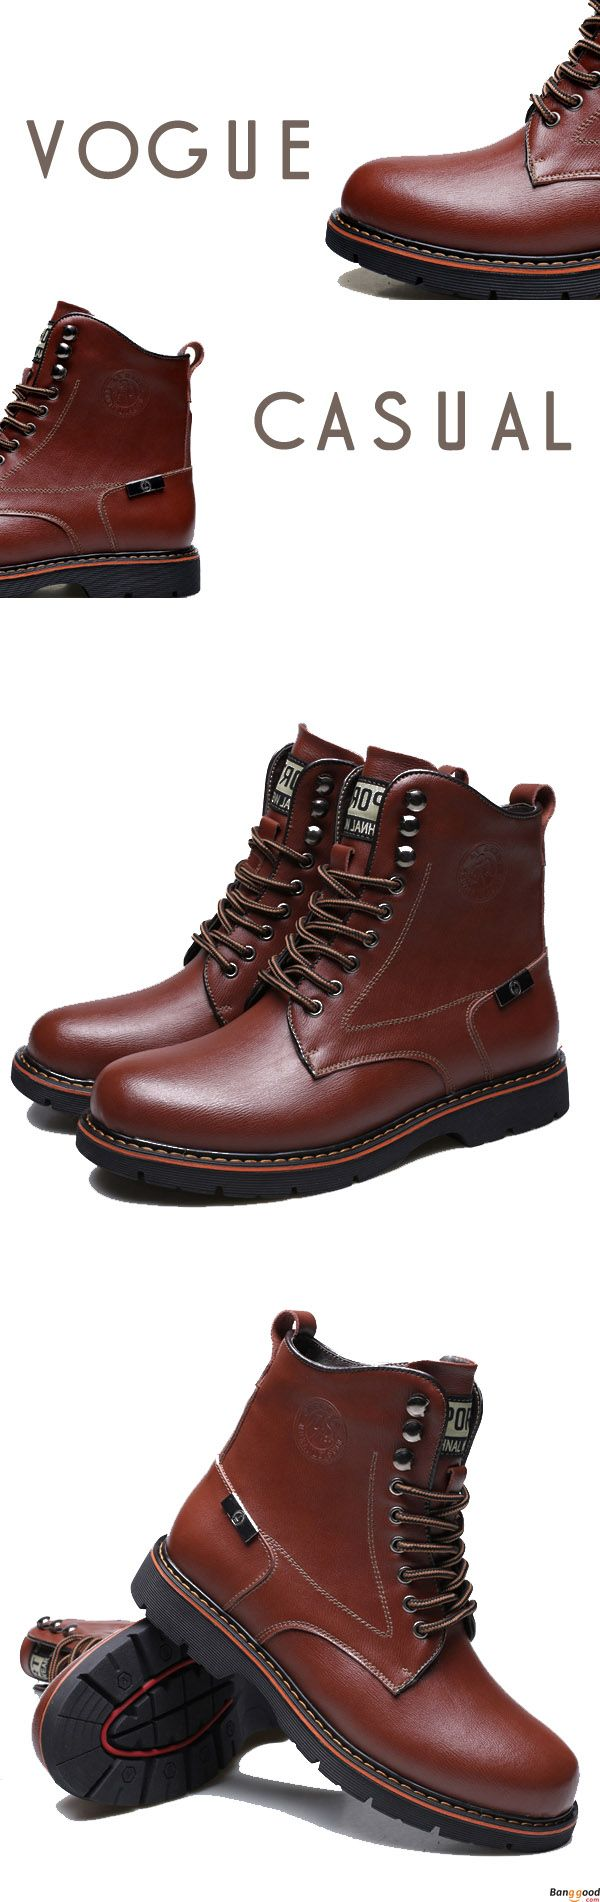 US$56.99+ Free Shipping   Men leather boots. 2 colors available. size: us6.5~us10. fashion and chic.  Men's shoes,men's boots, boots,biker boots,dr martens men's style, chic style, fashion style. Shop at banggood with super affordable price. #men'sshoes#men'sstyle#chic#style#fashion#style#wintershoes#men'sboots#bikerboots#drmartens